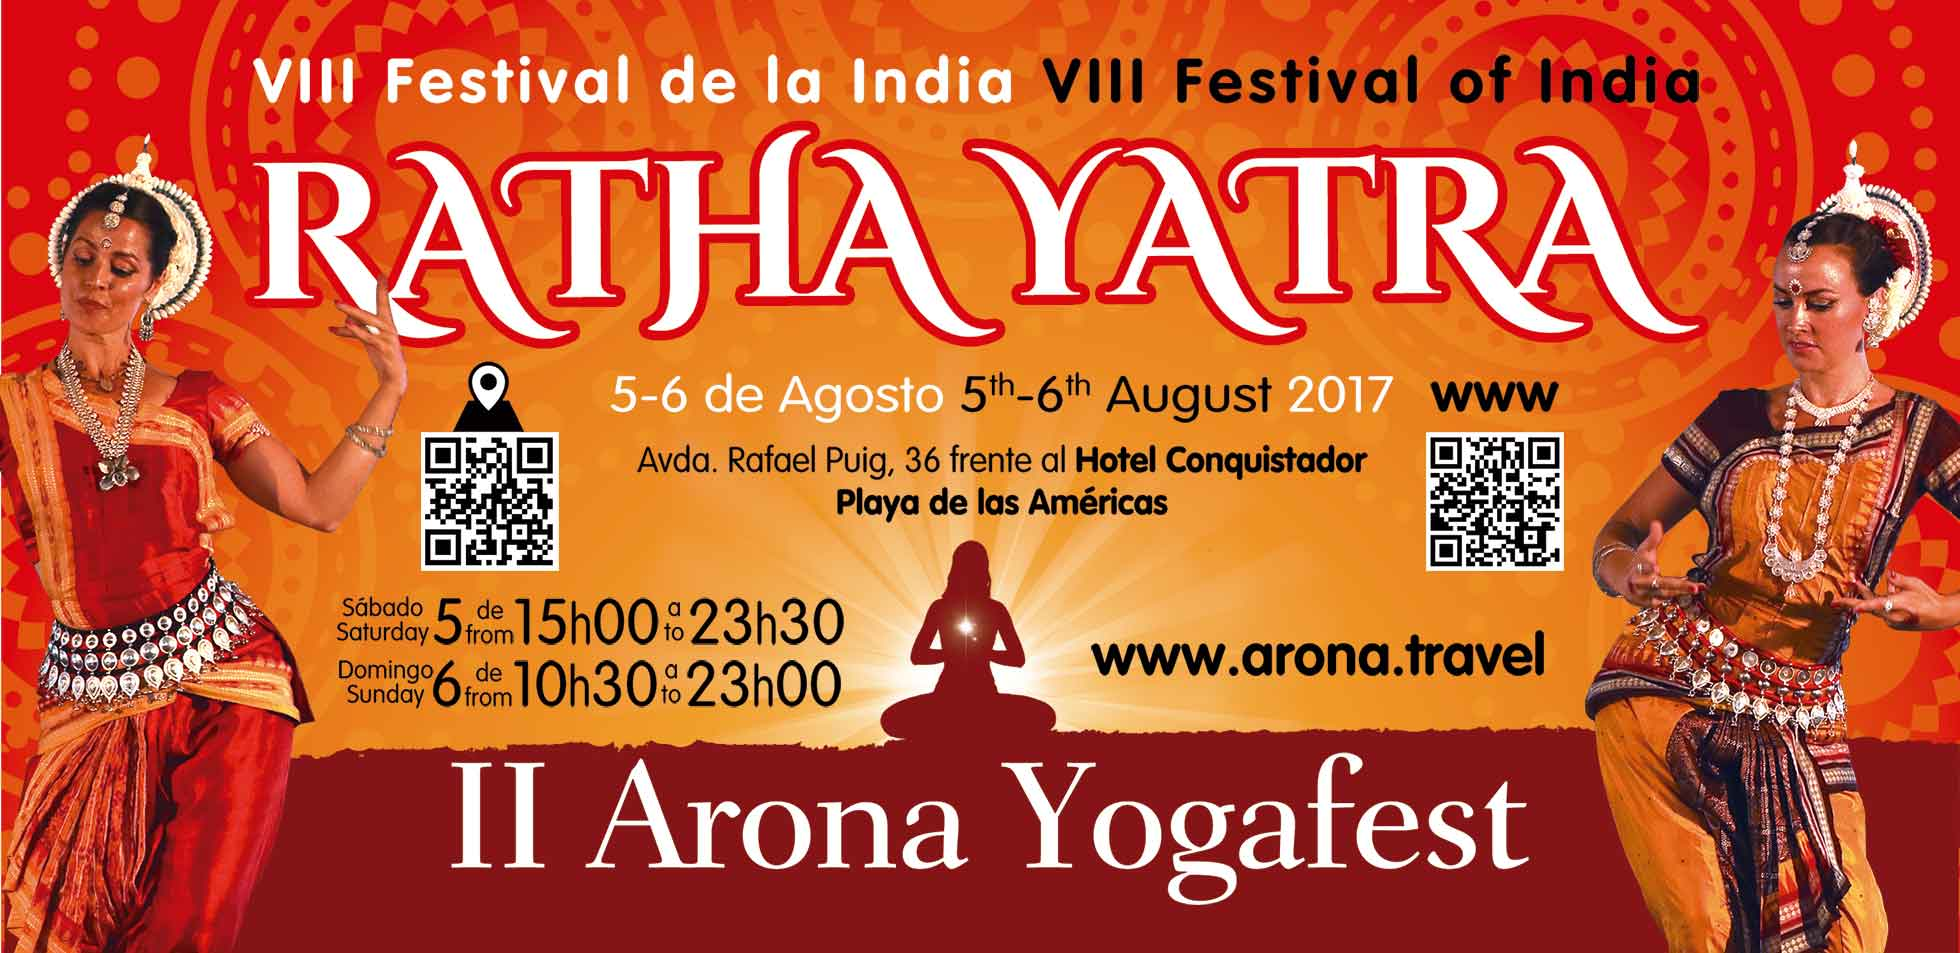 Program of Ratha Yatra Festival in Playa de Las Américas on August 5 & 6, 2017